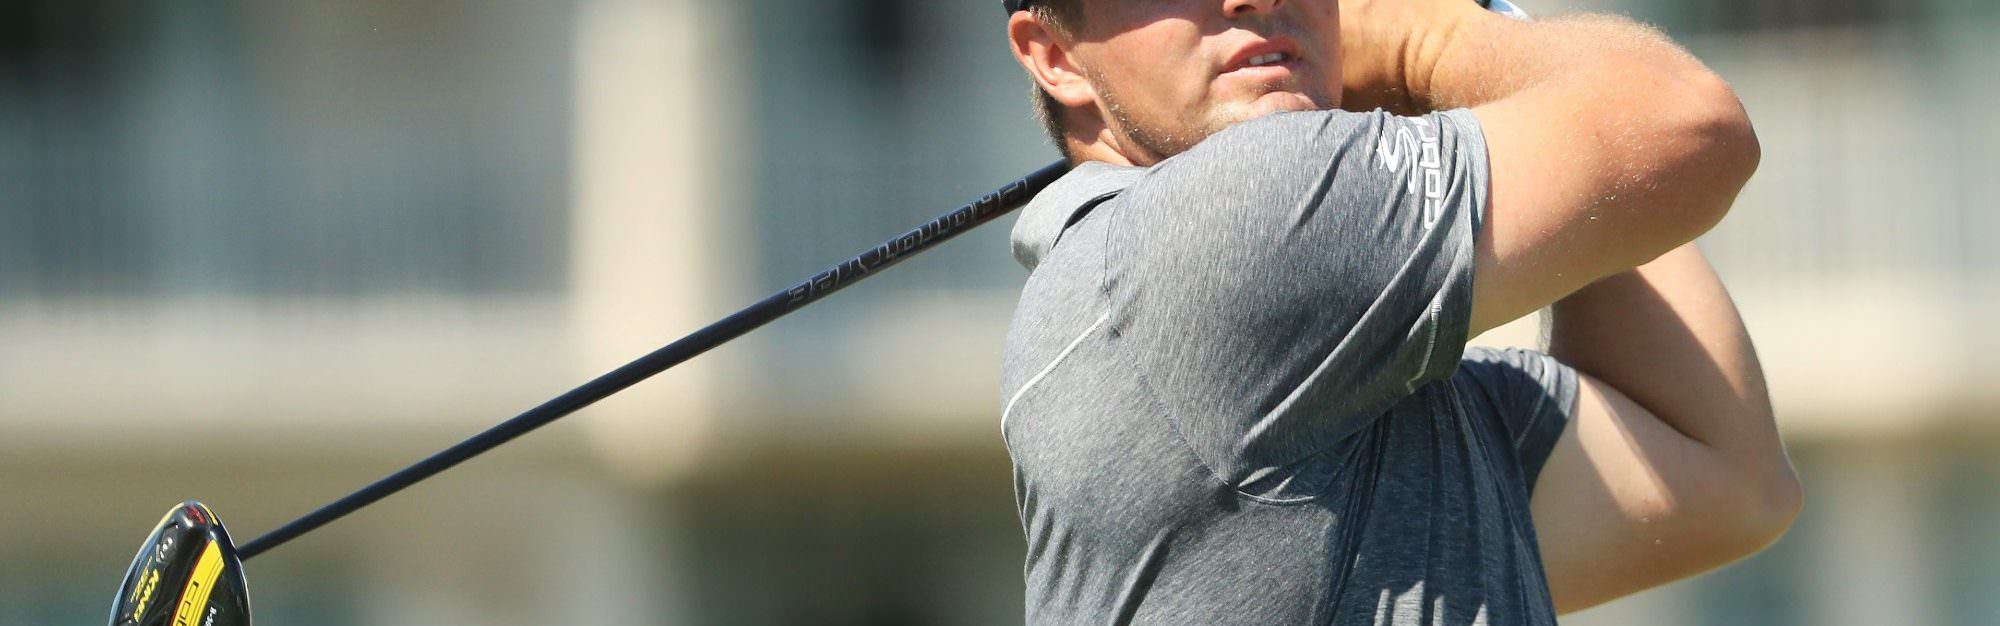 Can you improve your golf with a DeChambeau-style weight gain?